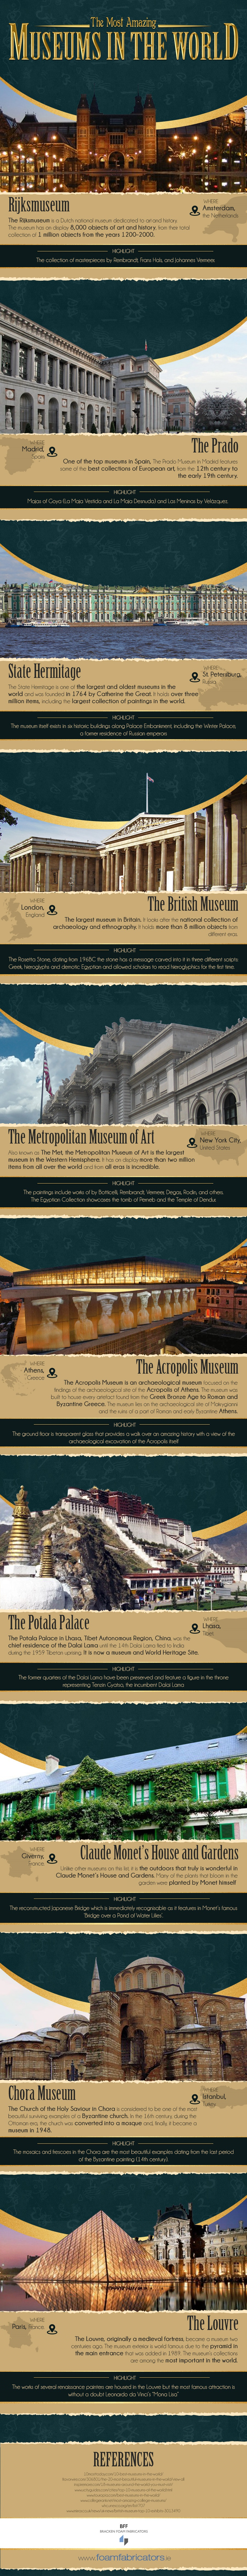 The Most Amazing Museums in the World